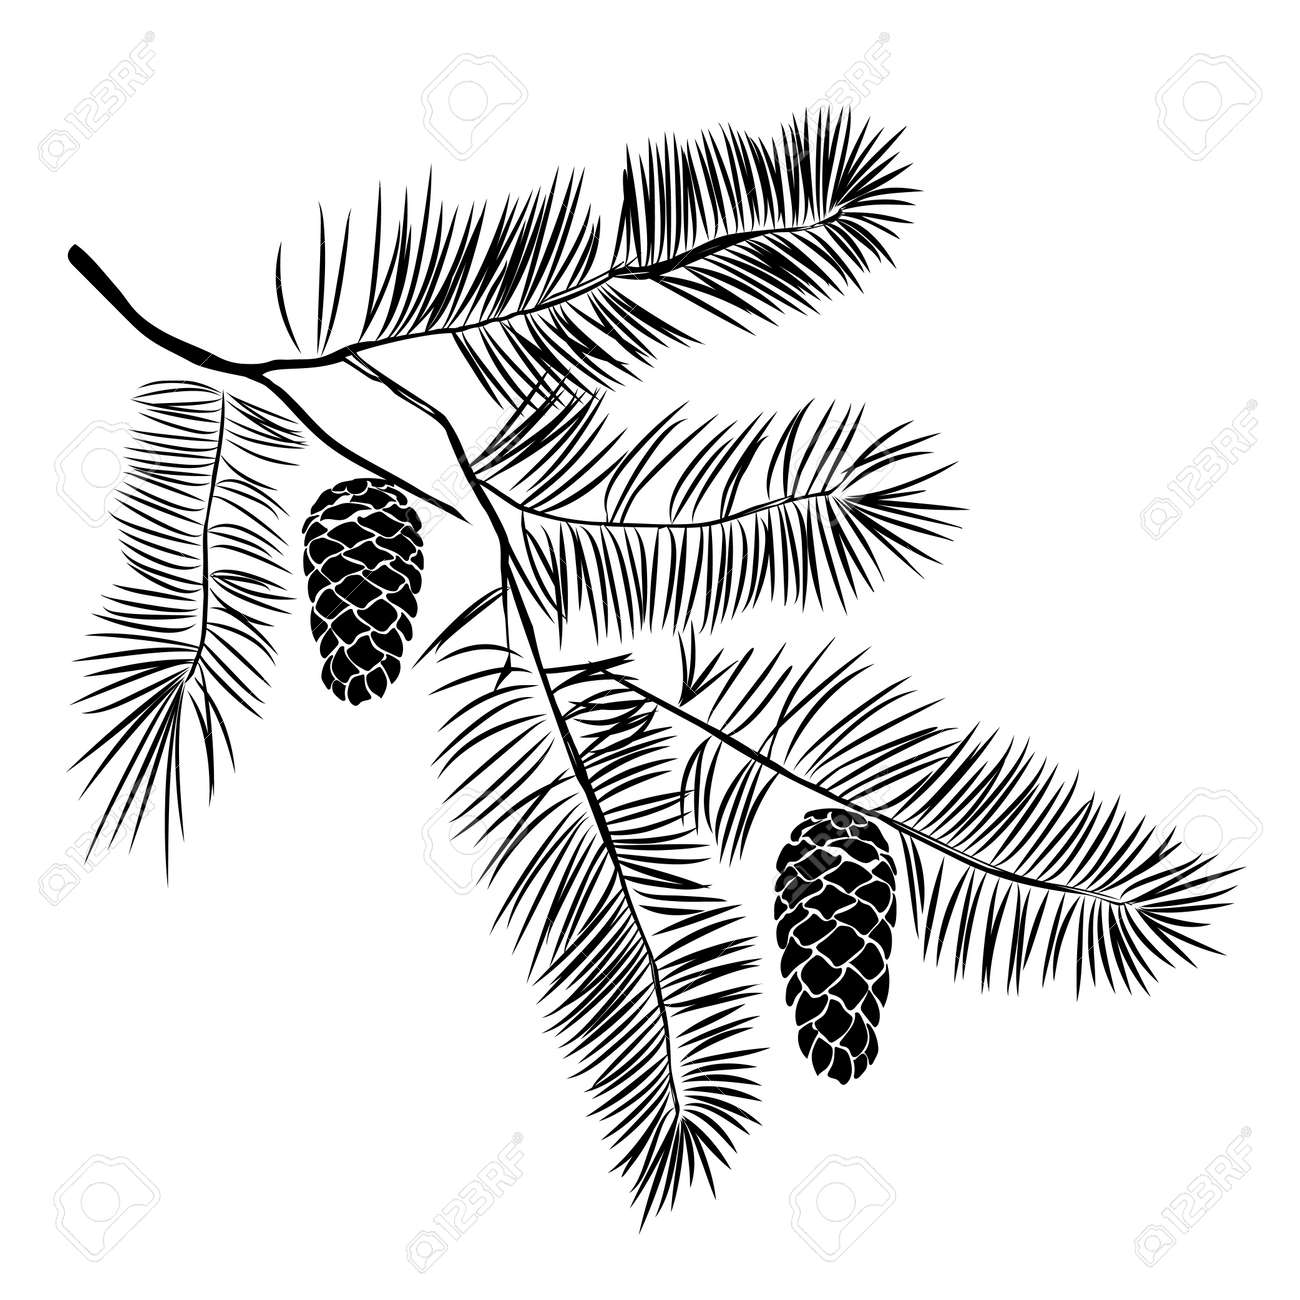 Seemly Hand Drawn Pine Tree Branch Isolated On Ink Illustrationin Vintage Engraved Style Hand Drawn Pine Tree Branch Isolated On Ink Pine Tree Branches Drooping Pine Tree Branches Turning Black houzz-03 Pine Tree Branch